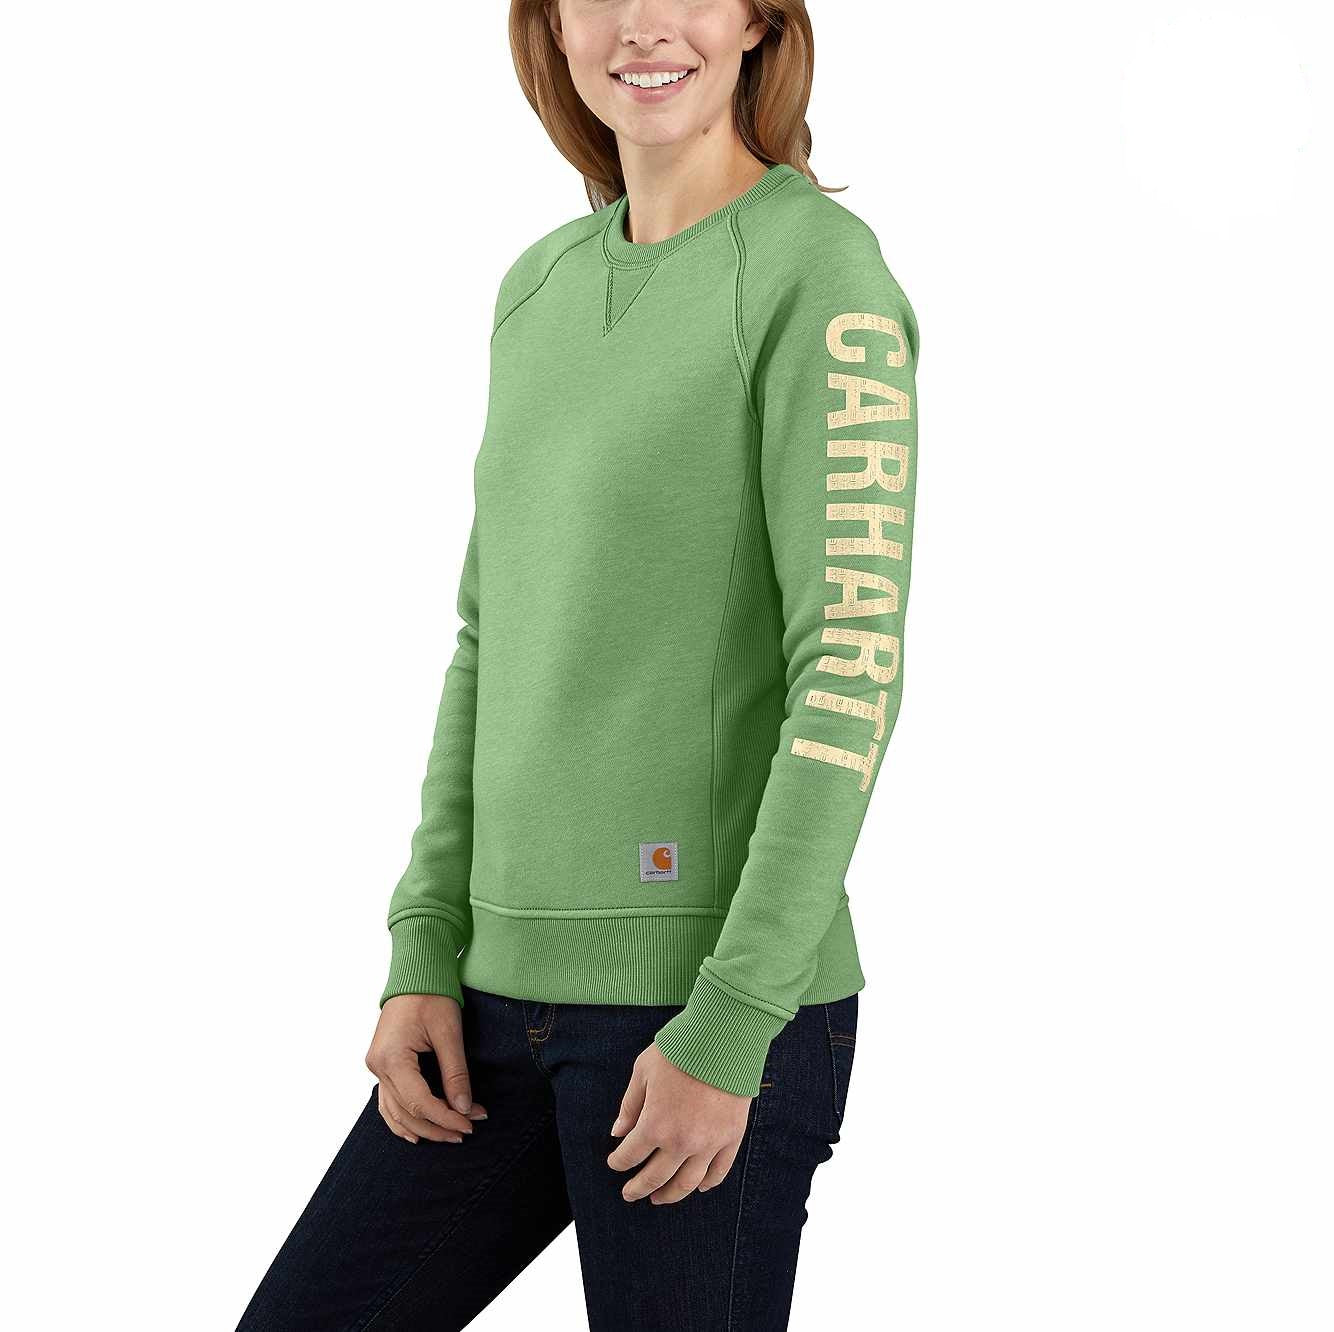 'Carhartt' Women's Relaxed Fit Midweight Graphic Crewneck - Boreal Heather